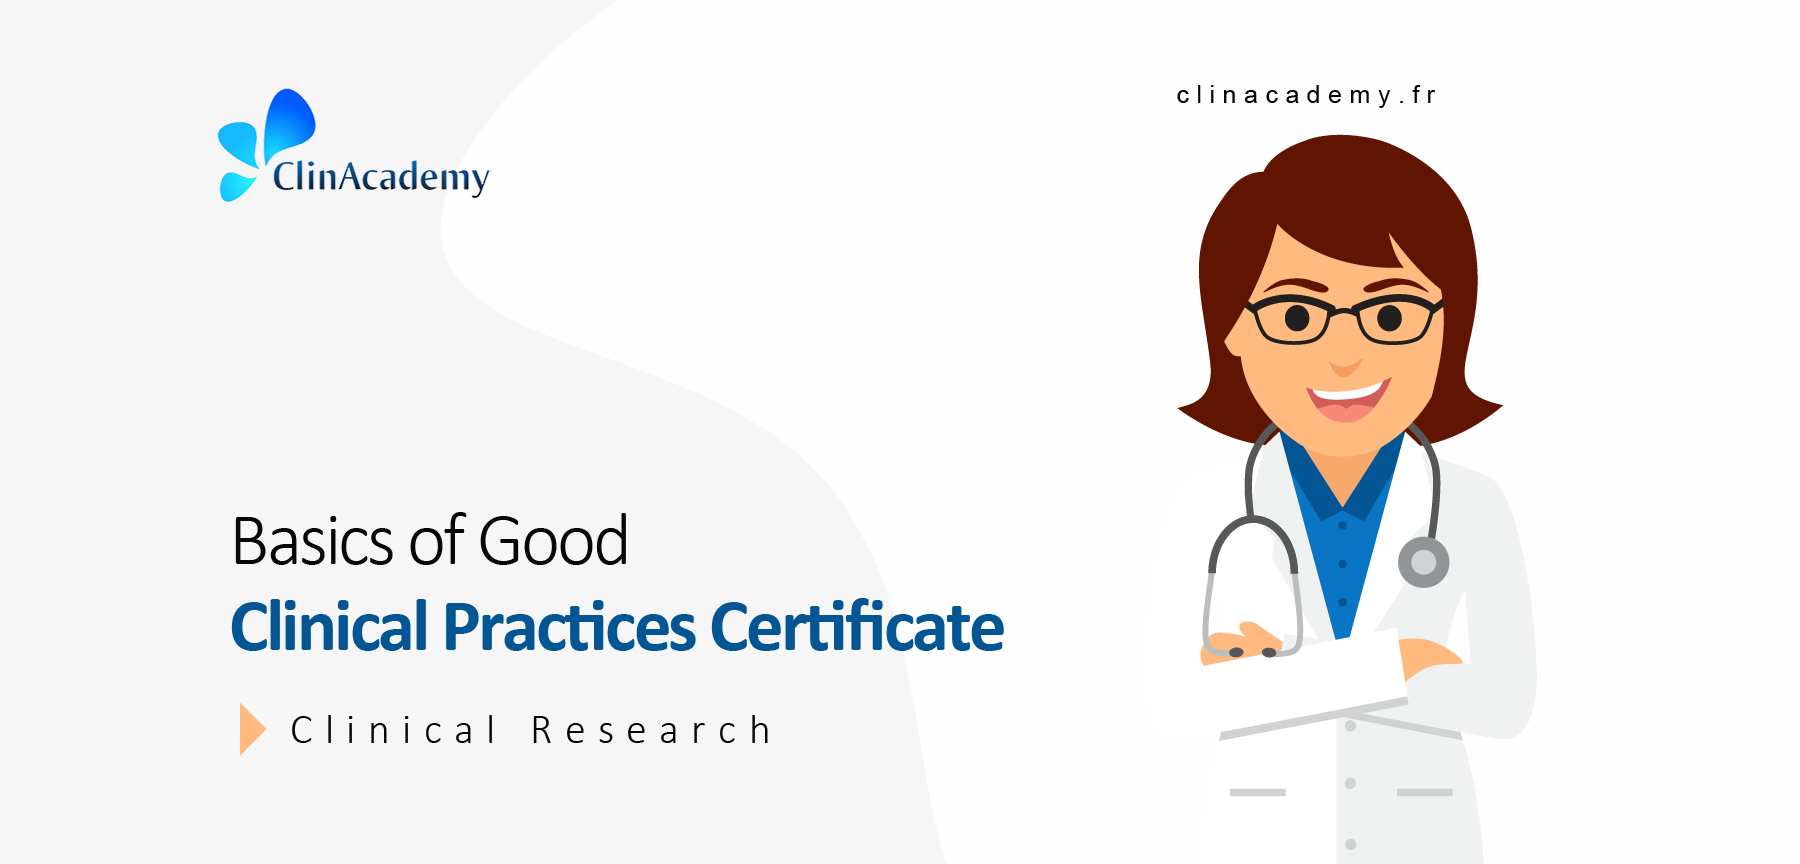 Basics of Good Clinical Practices Certificate